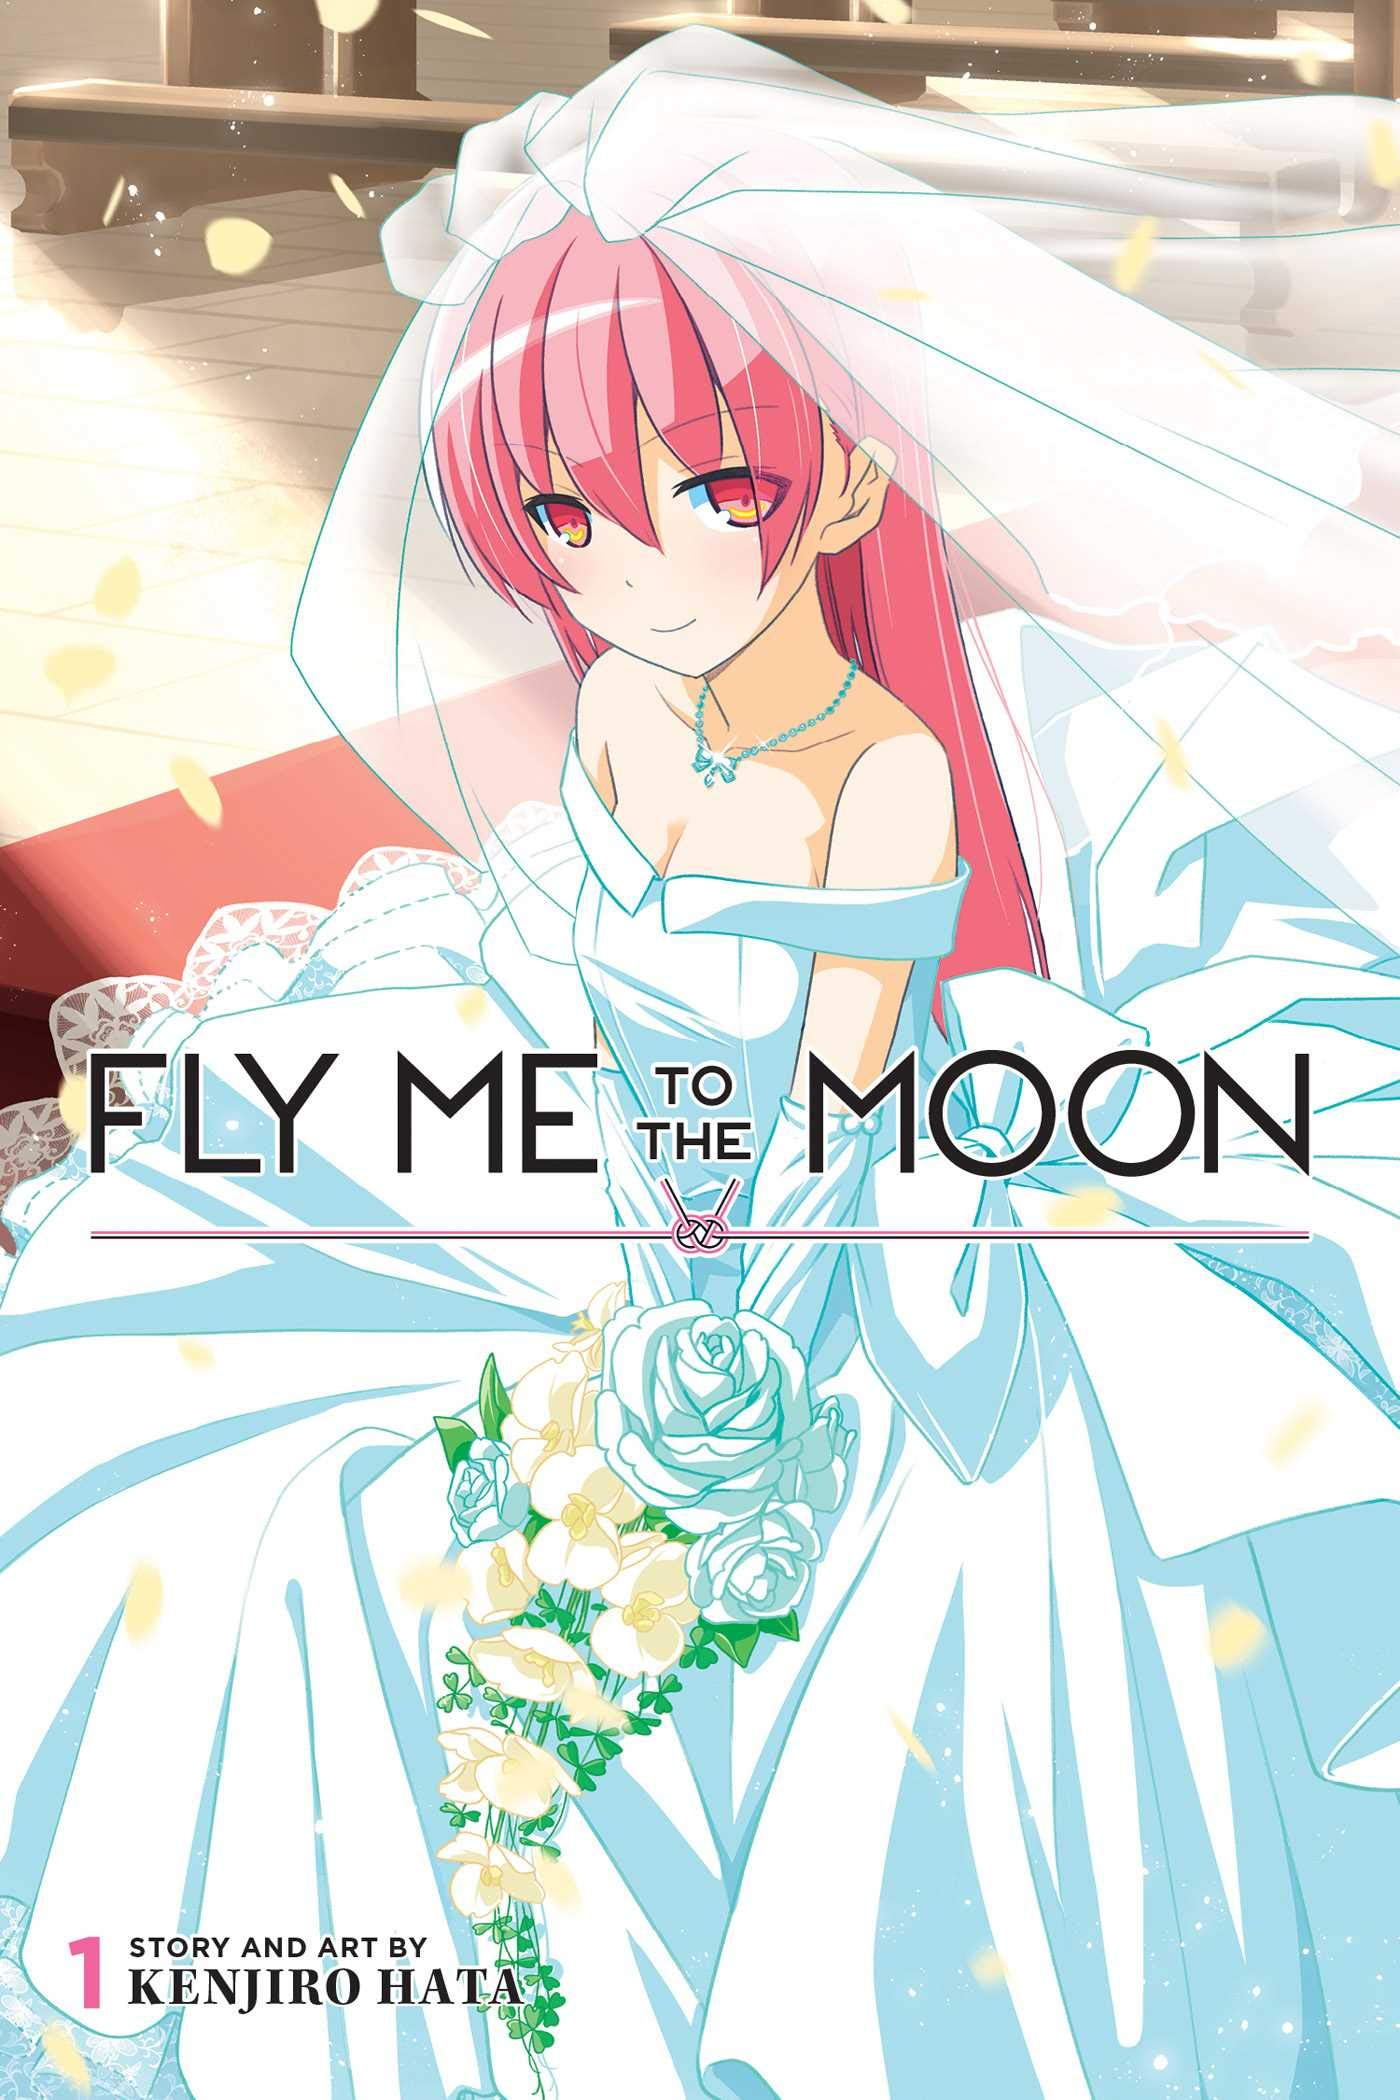 A pink-haired girl sits in a wedding veil and dress, on the cover of Fly Me to the Moon, Viz Media.